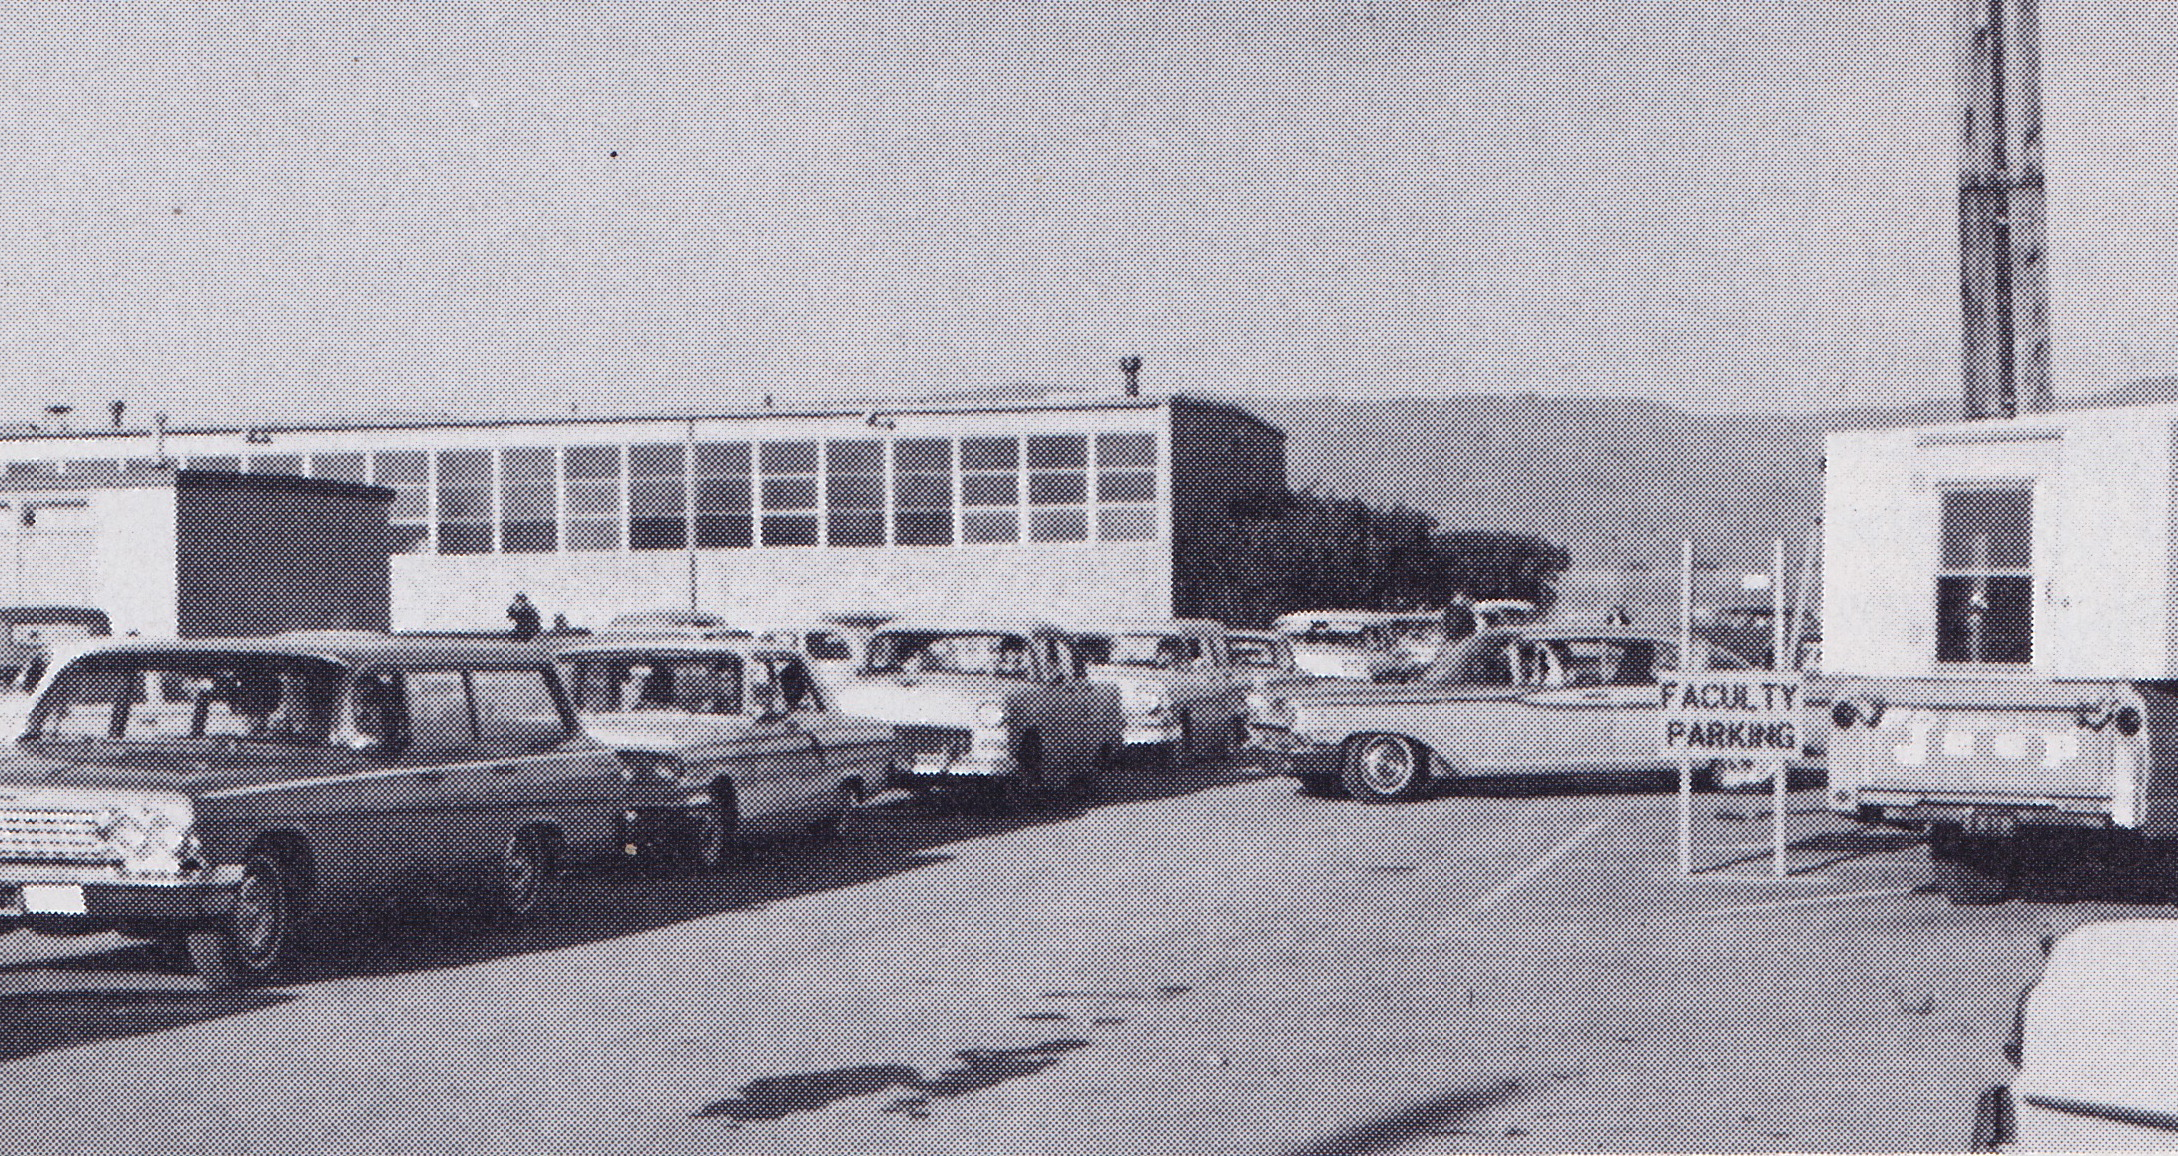 60s Wing, Shop Classes (Wood Shop, Metal Shop, Auto Shop, etc.), c. 1970s